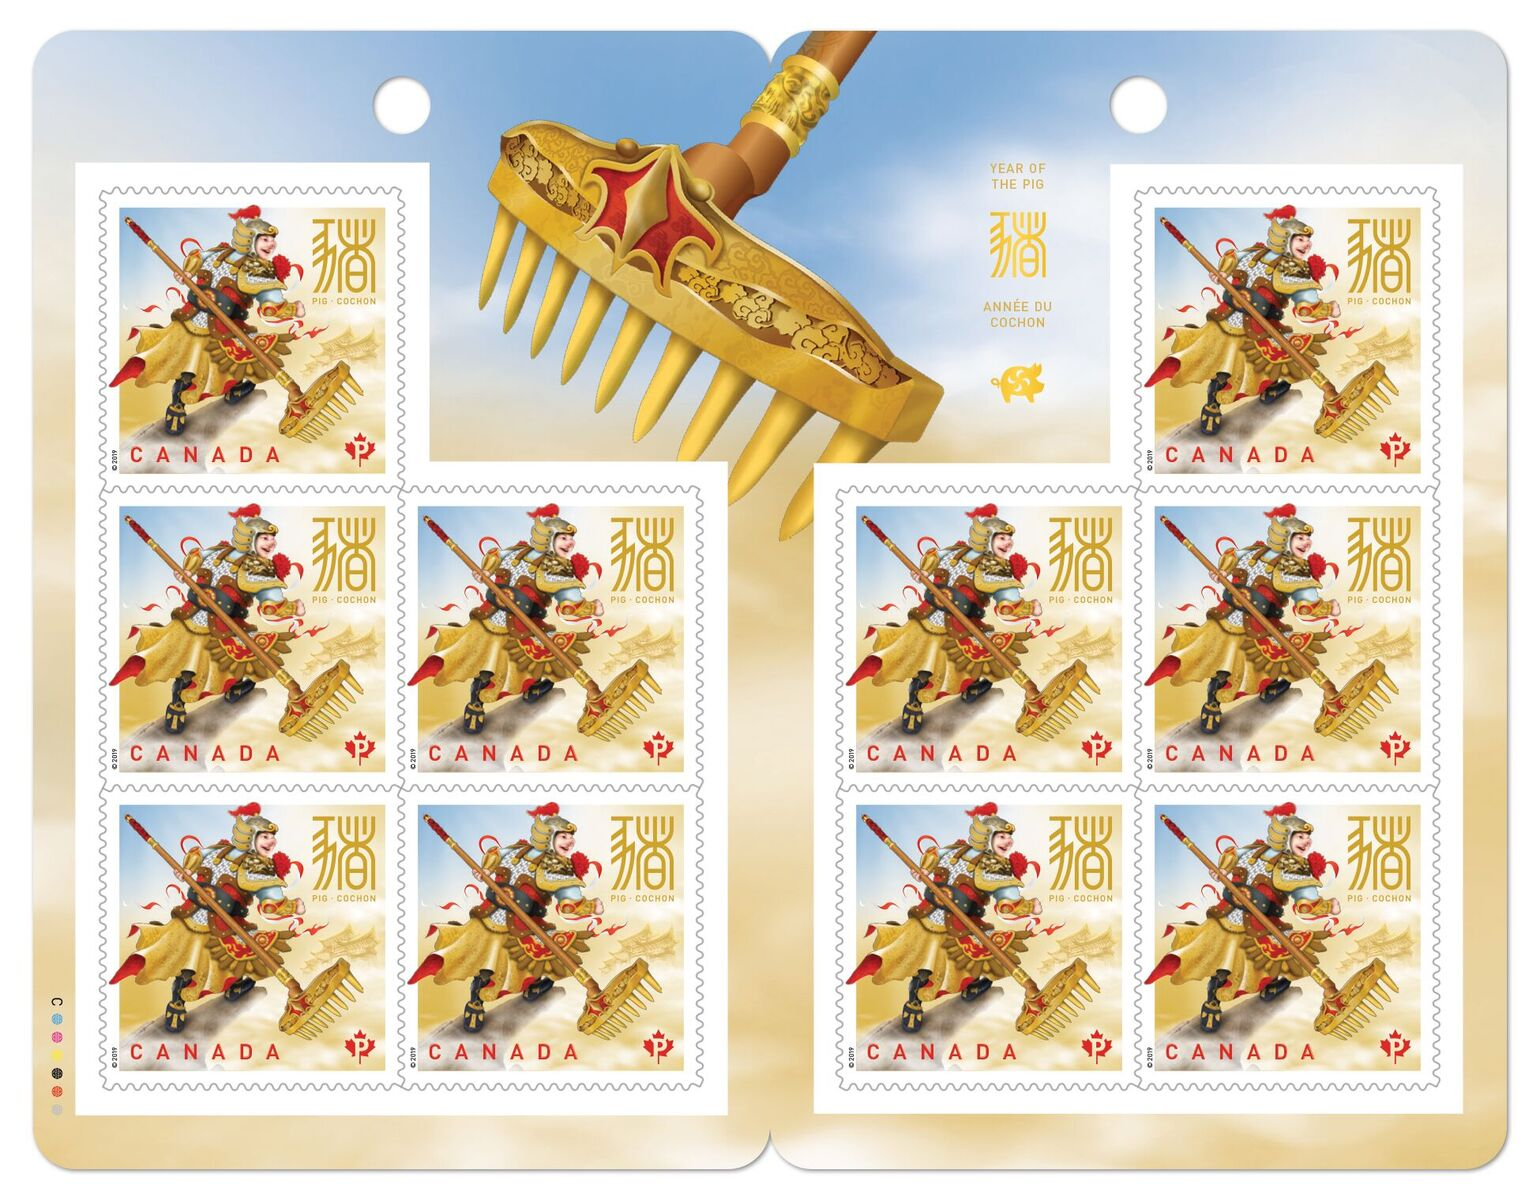 Lunar New Year stamps continue long-running series